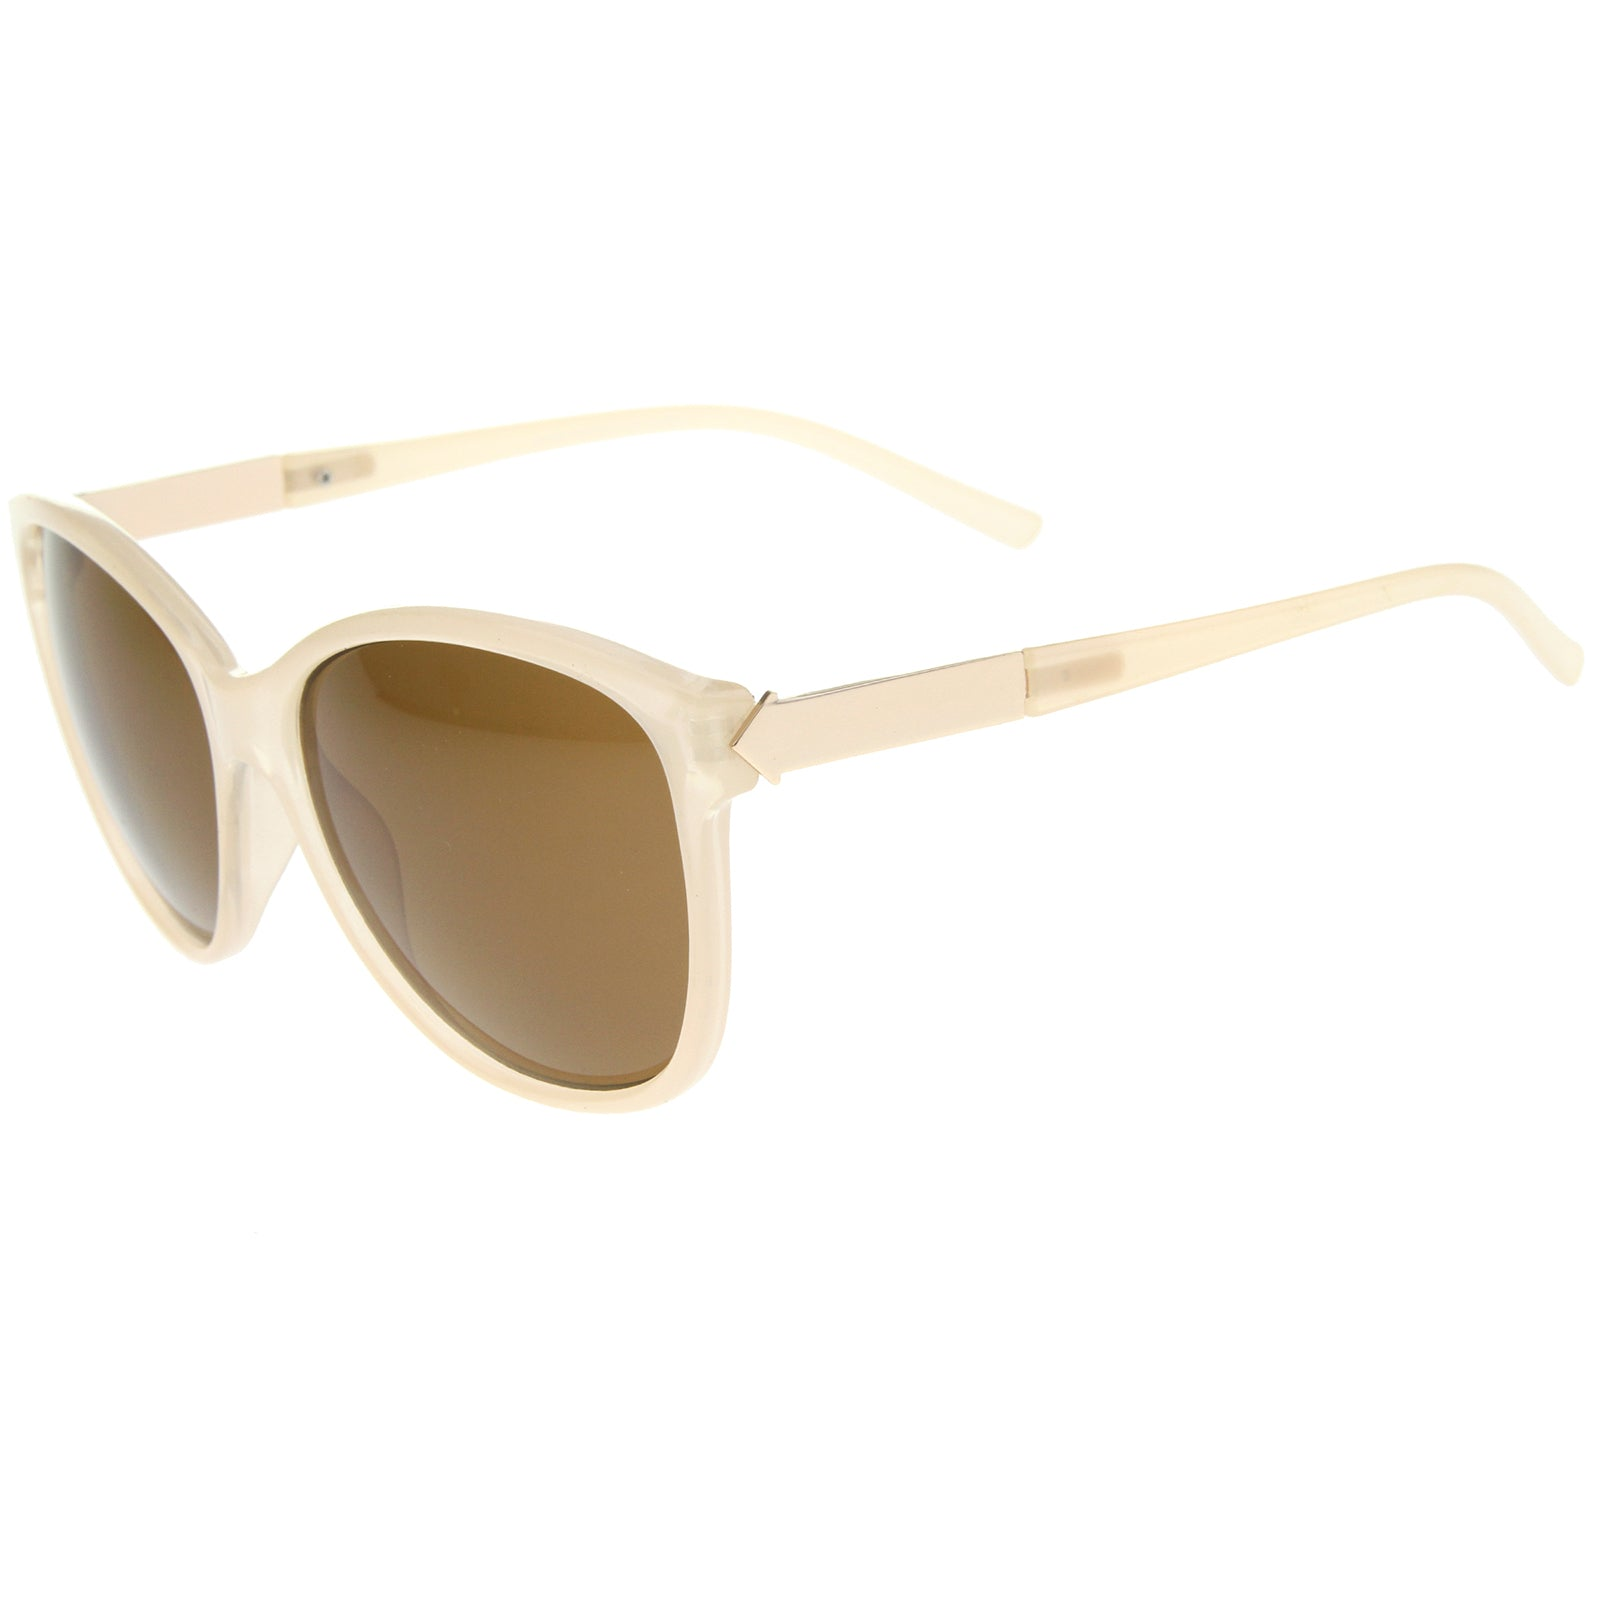 Women's Glam Fashion Metal Temple Oversize Cat Eye Sunglasses 59mm - sunglass.la - 15